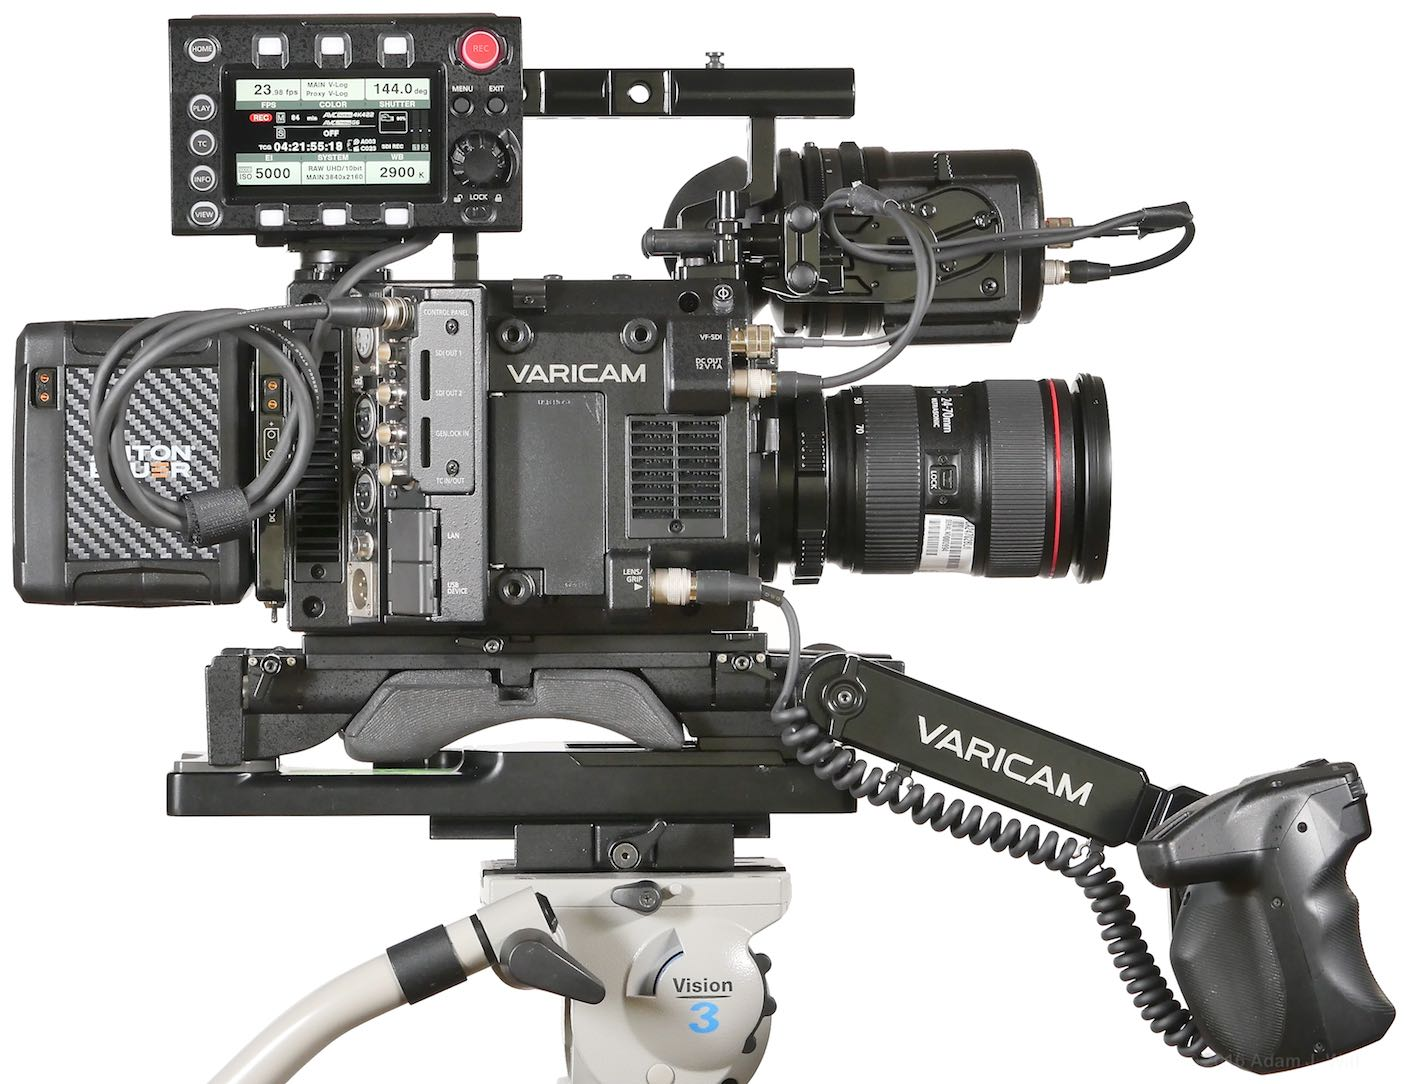 VariCam LT right side